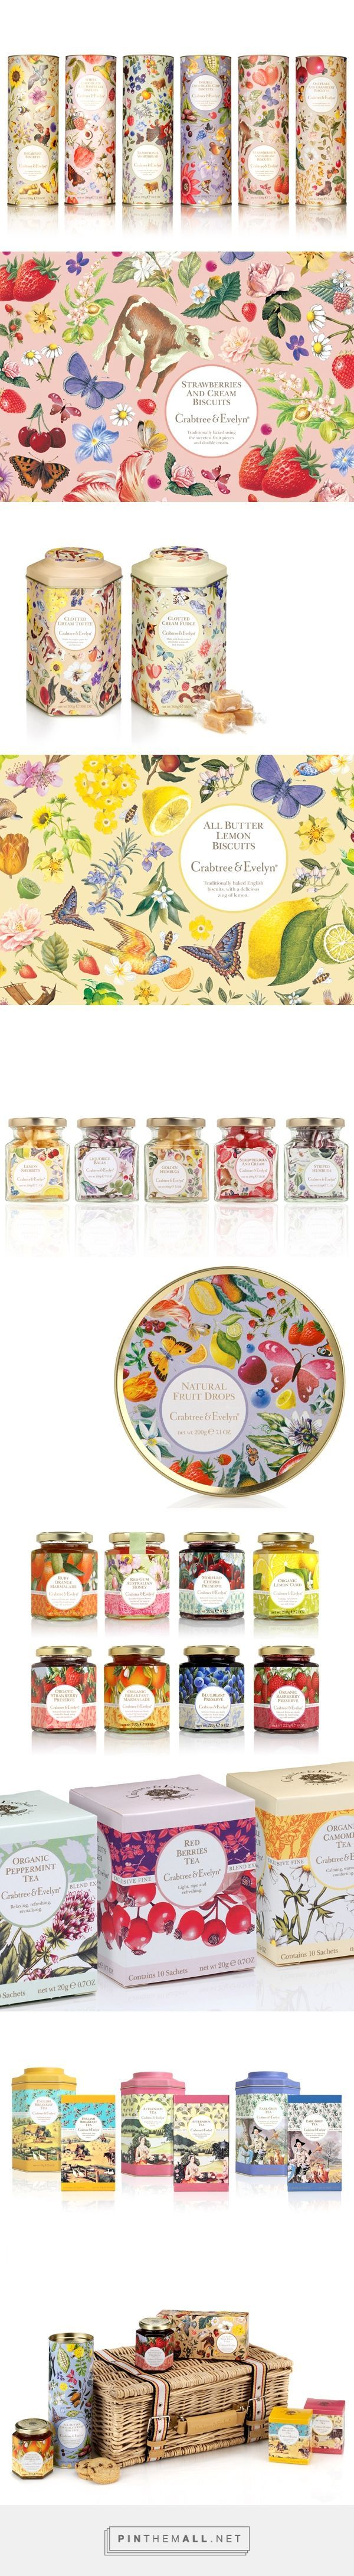 Crabtree & Evelyn Food Range on Behance by Caroline Phillips curated by Packaging Diva PD. Packaging love : )